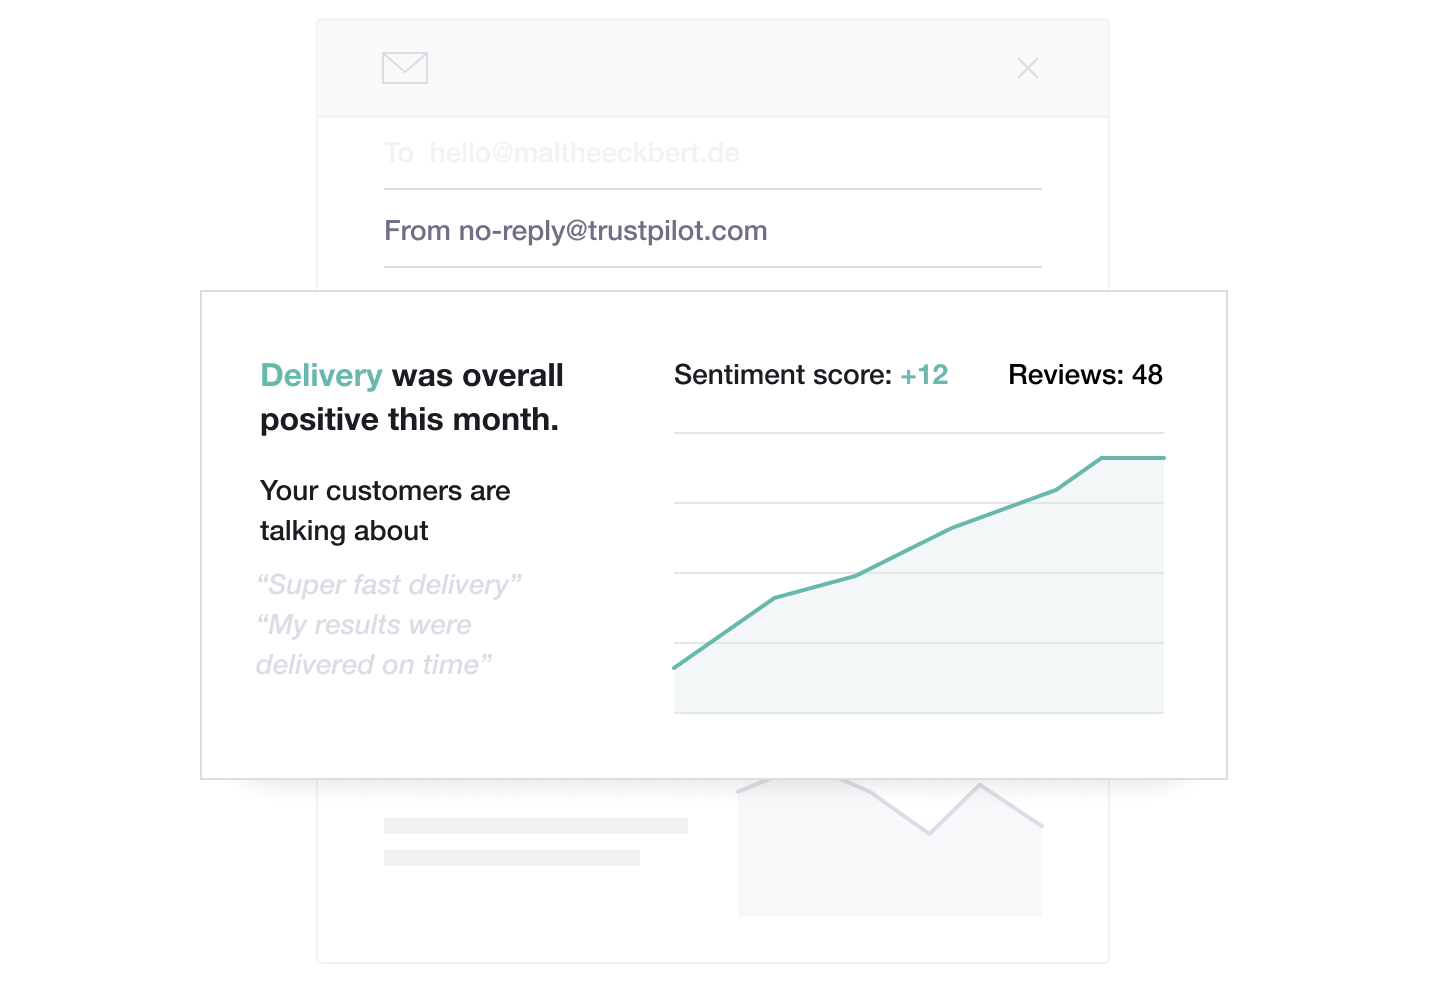 Trustpilot's evolution in sentiment insights